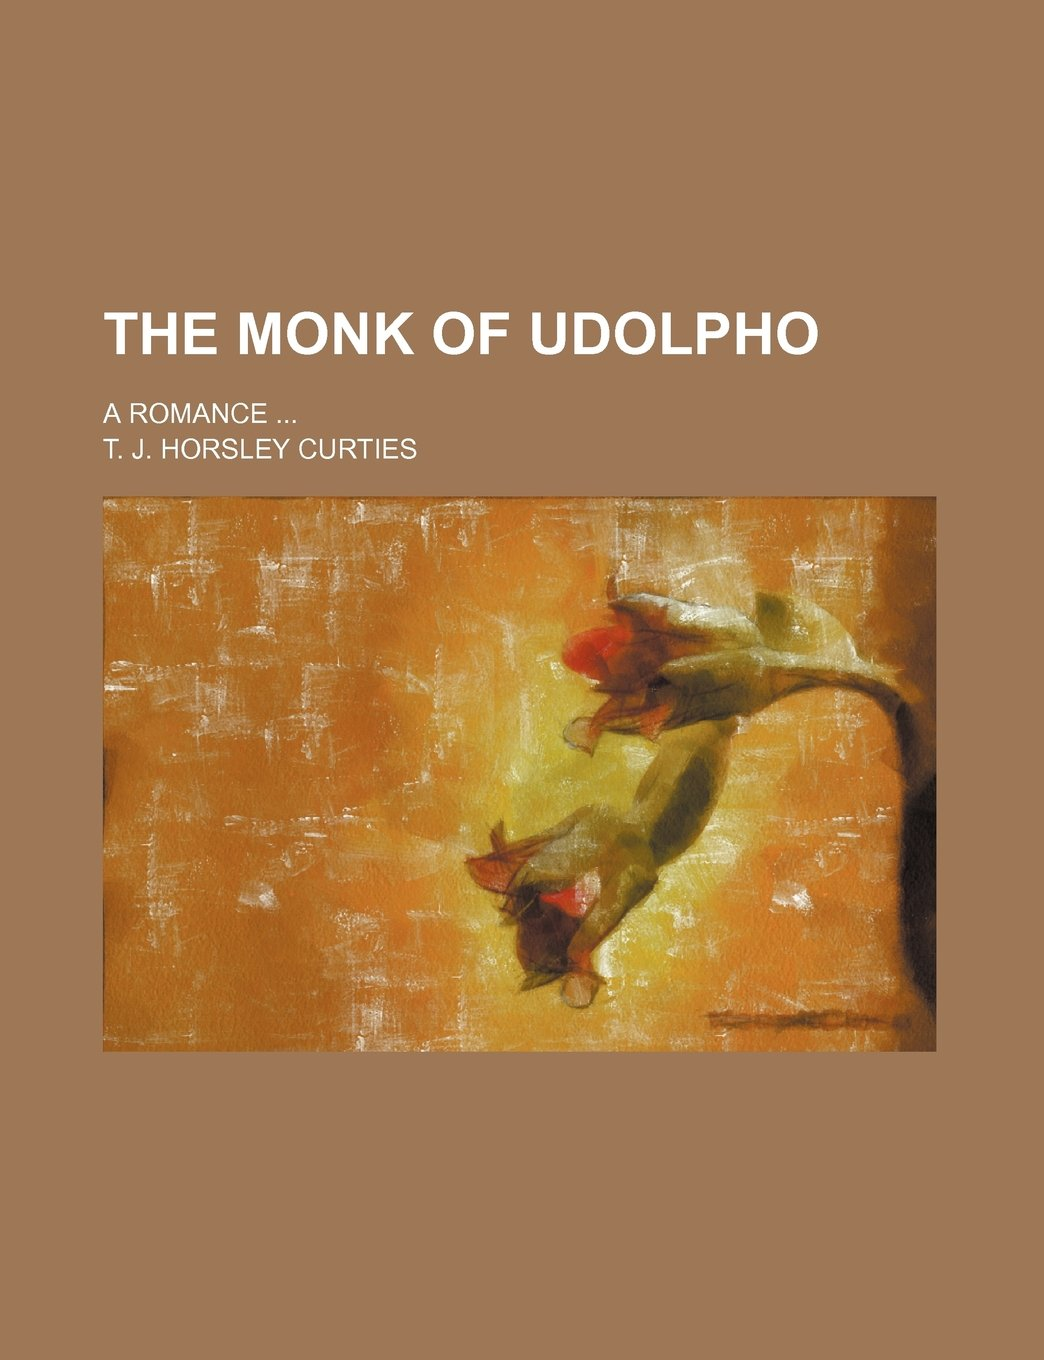 The Monk of Udolpho